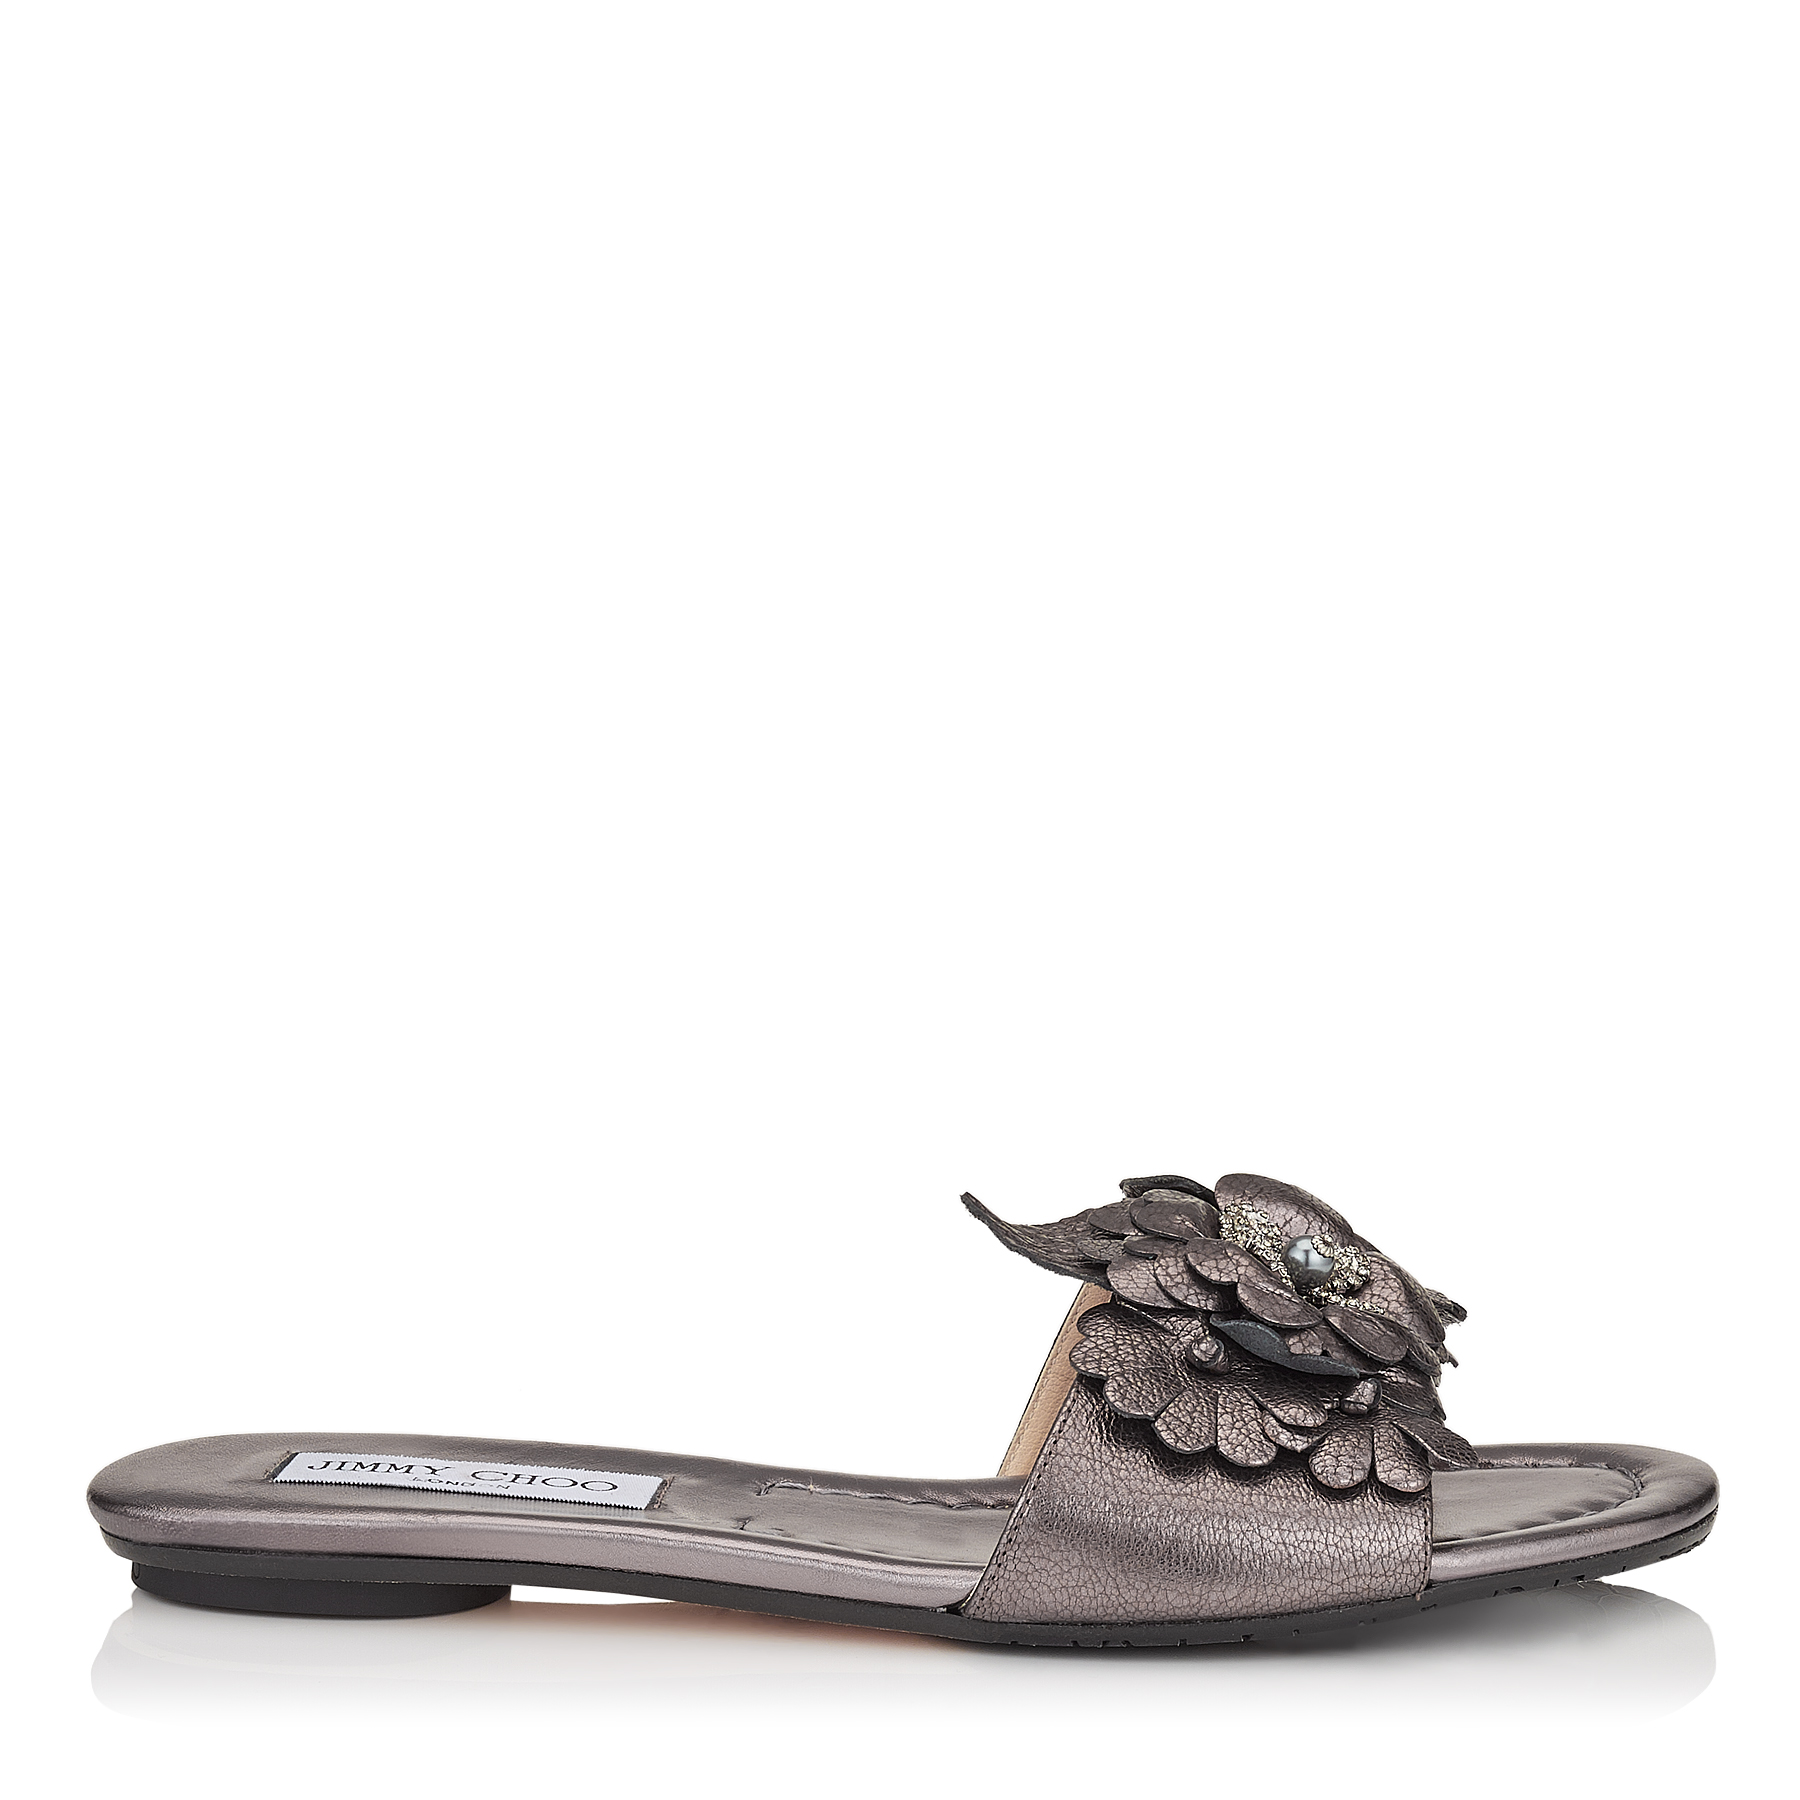 NEAVE FLAT Light Mocha Metallic Softened Leather Slides with Floral Appliqué